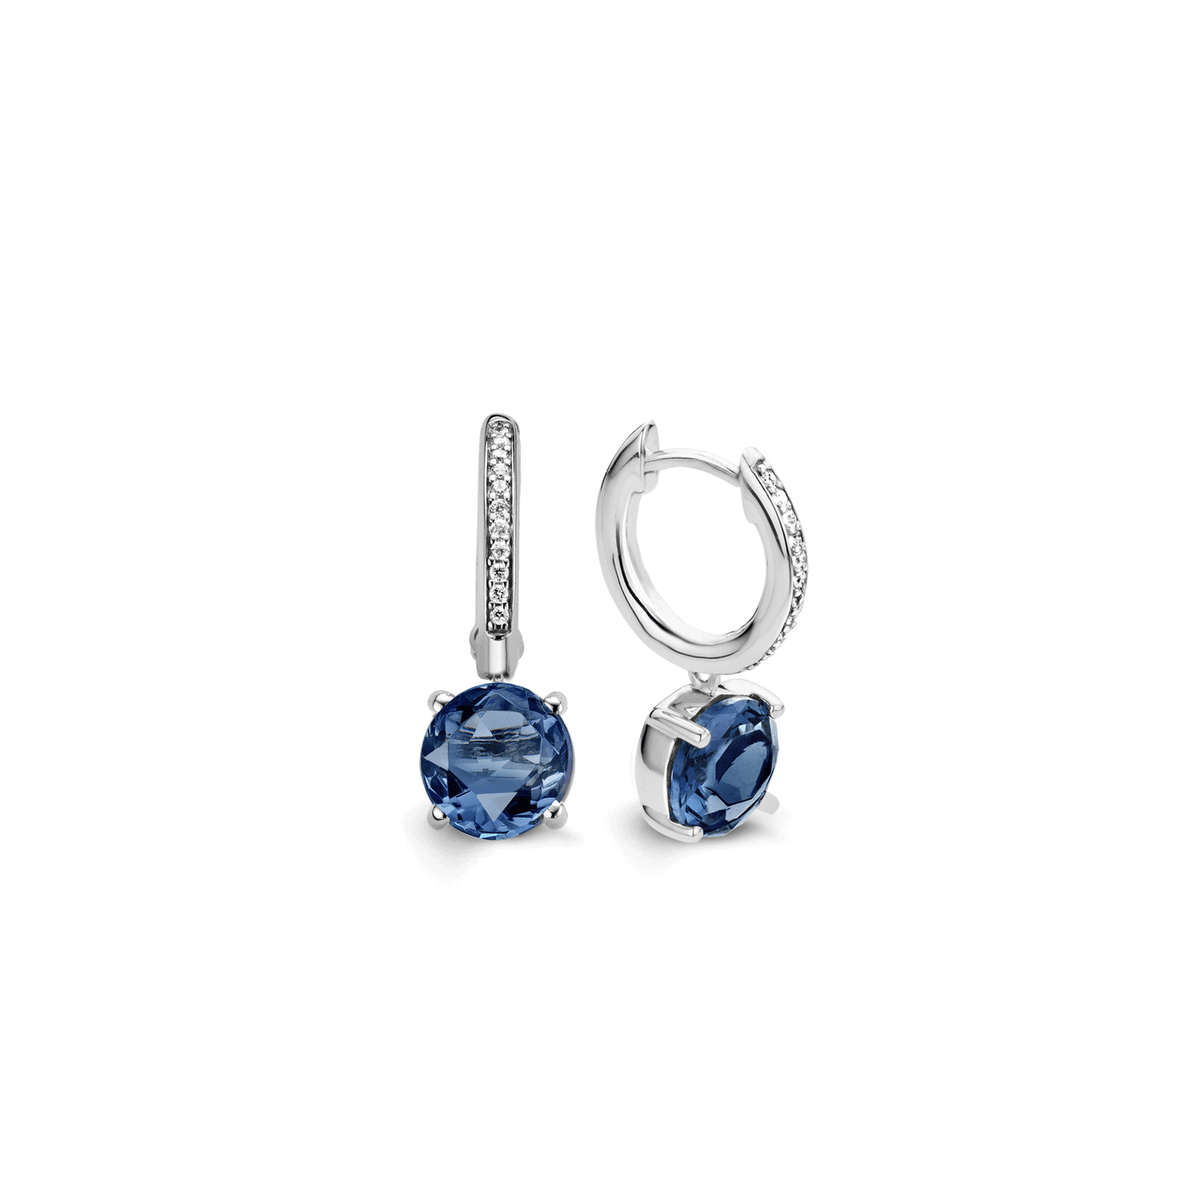 TI SENTO - Milano Earrings 7663DB